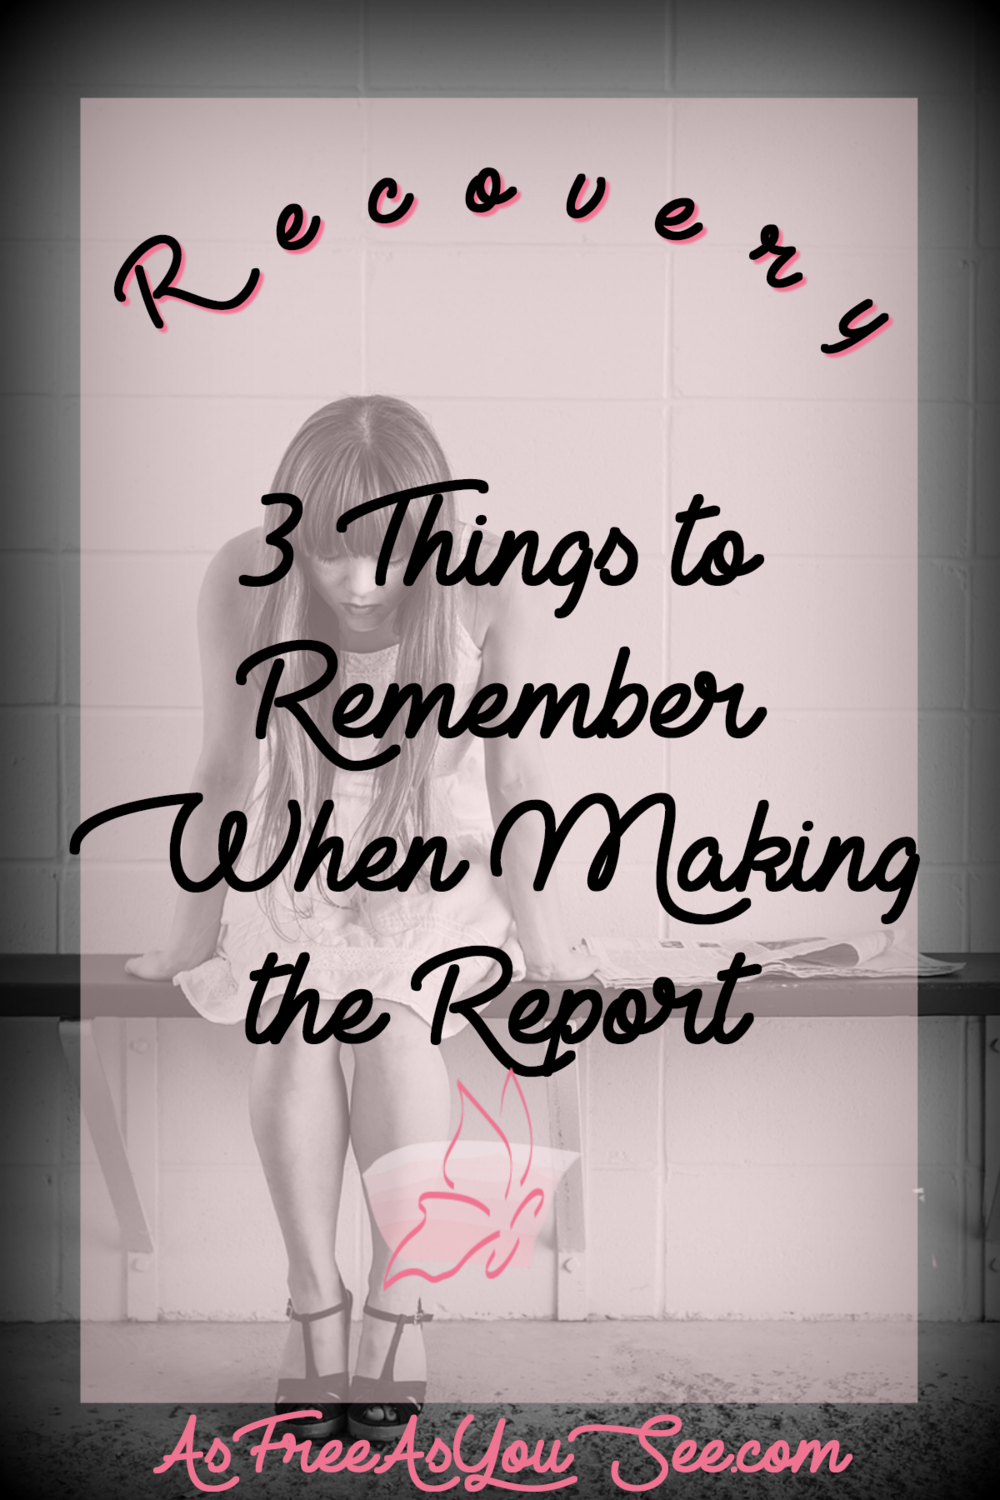 Recovery: 3 Things to Remember When Making the Report